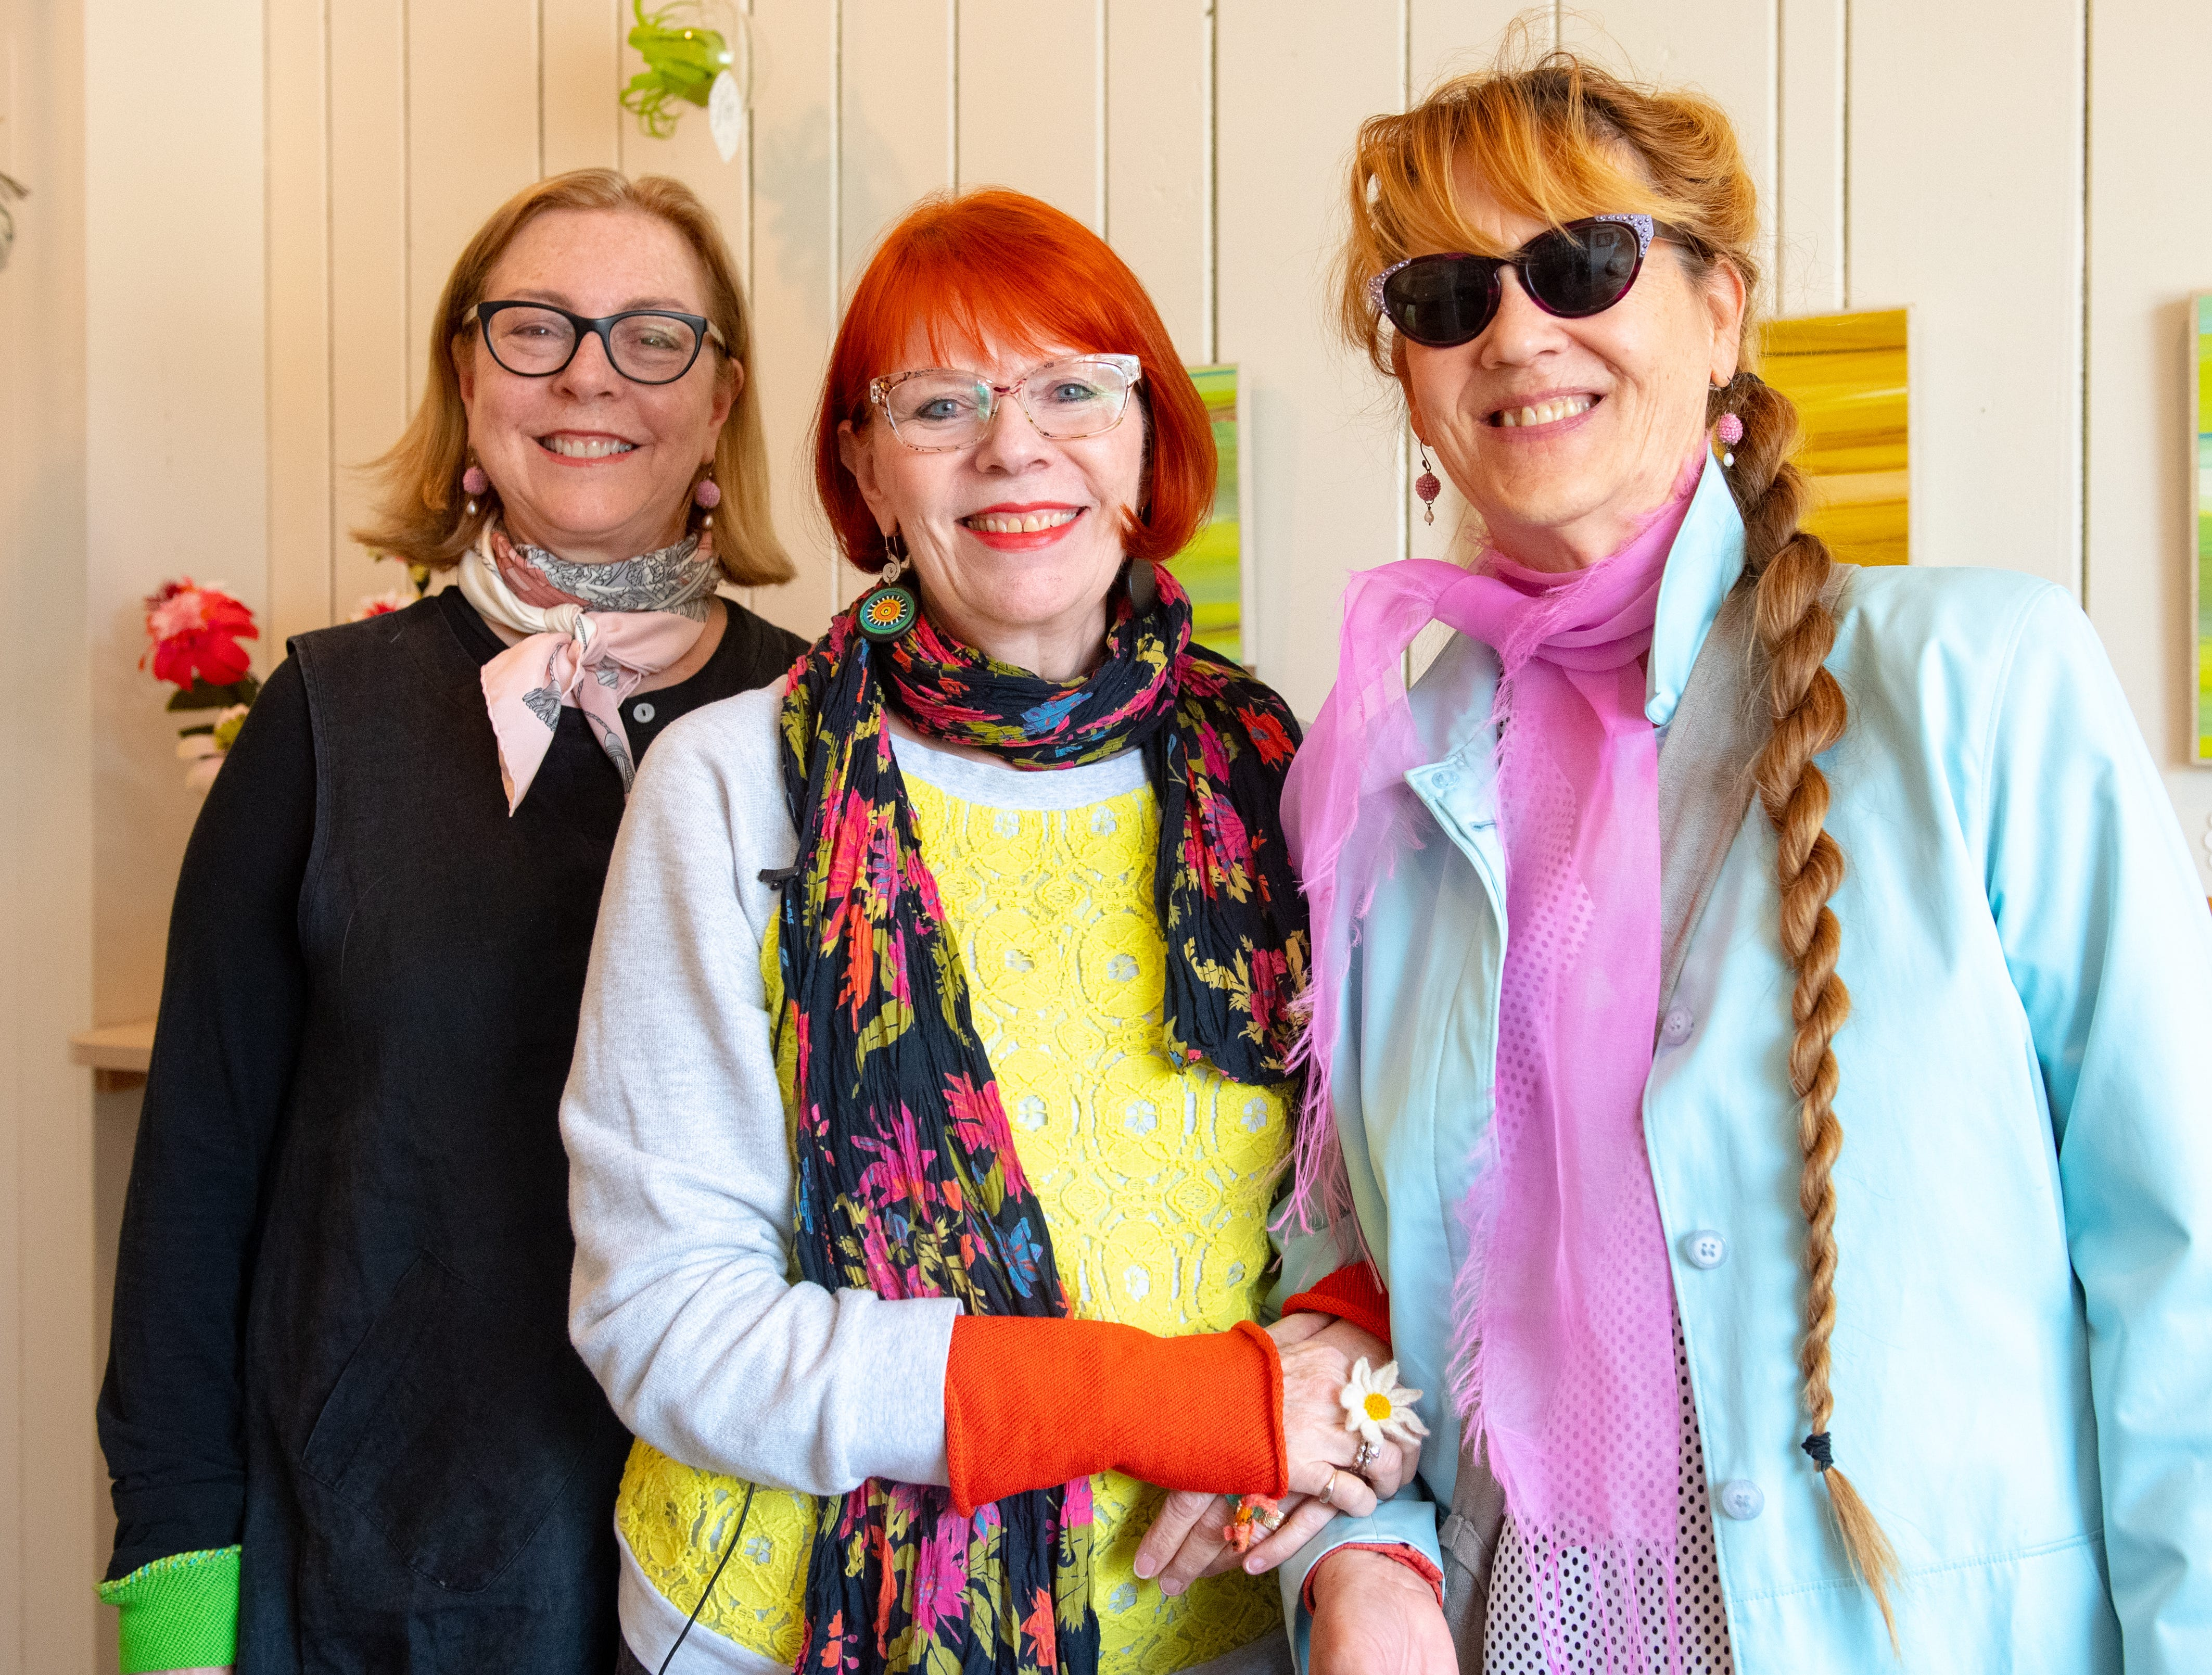 Venture is the brain child of long-time friends (left to right) JoAnne Schiavone, Susan McDaniel and Karen Paust. Many of their crafts line the walls of the building, April 11, 2019.